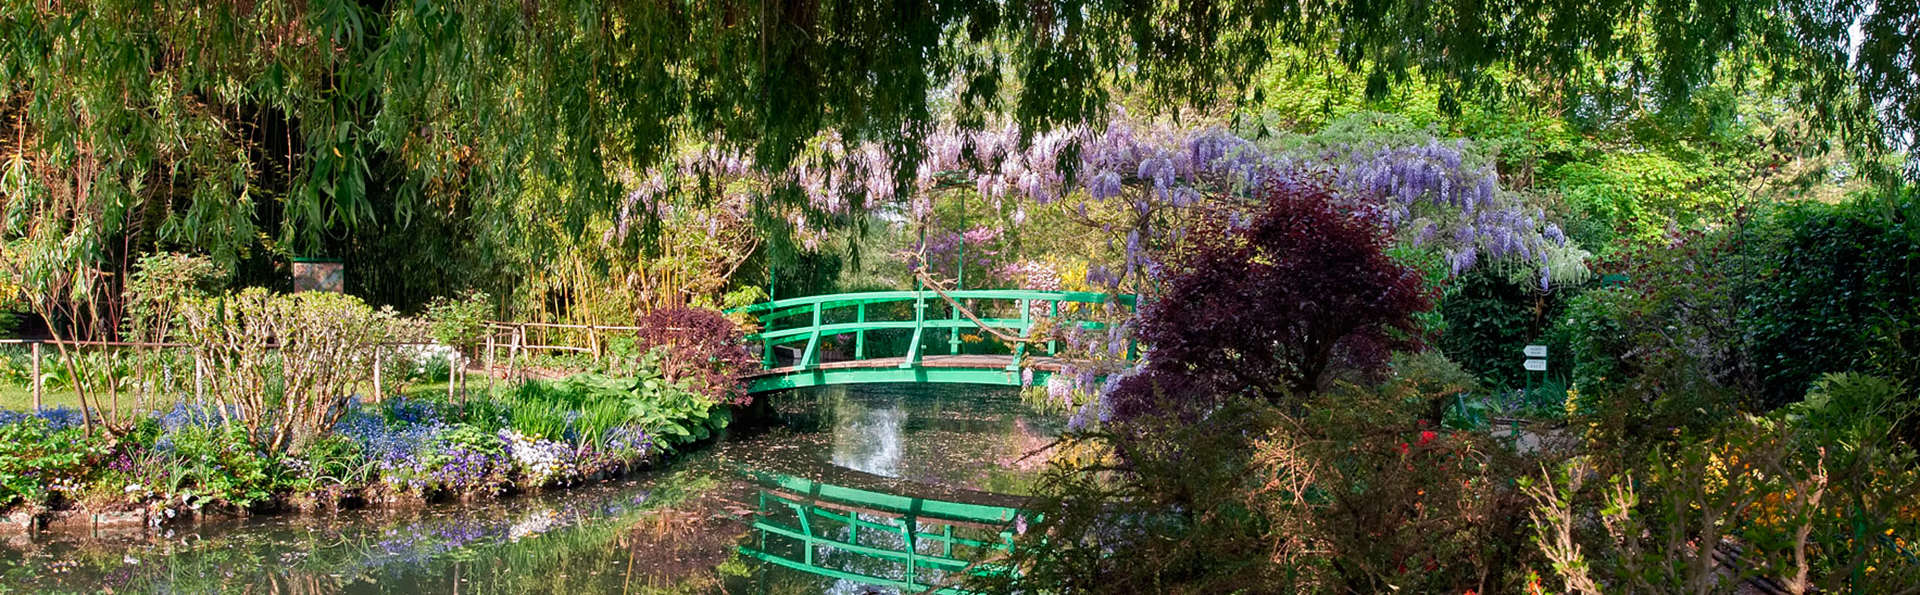 week end culturel giverny avec 1 visite de la maison de claude monet et de son jardin pour 2. Black Bedroom Furniture Sets. Home Design Ideas